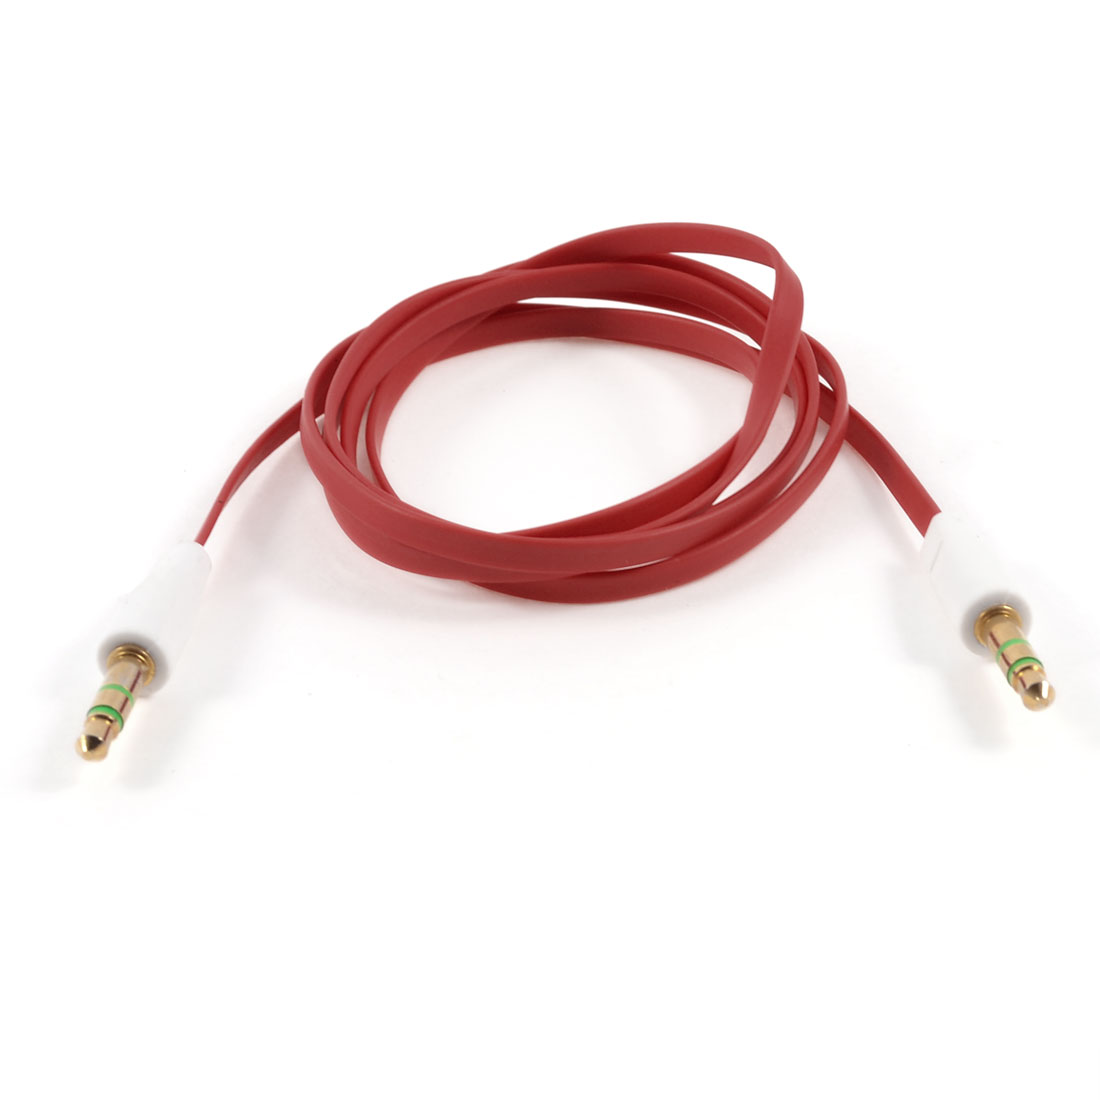 1M Long 3.5mm Male to 3.5mm Male Plug Stereo Audio Flat Extension Cable Red